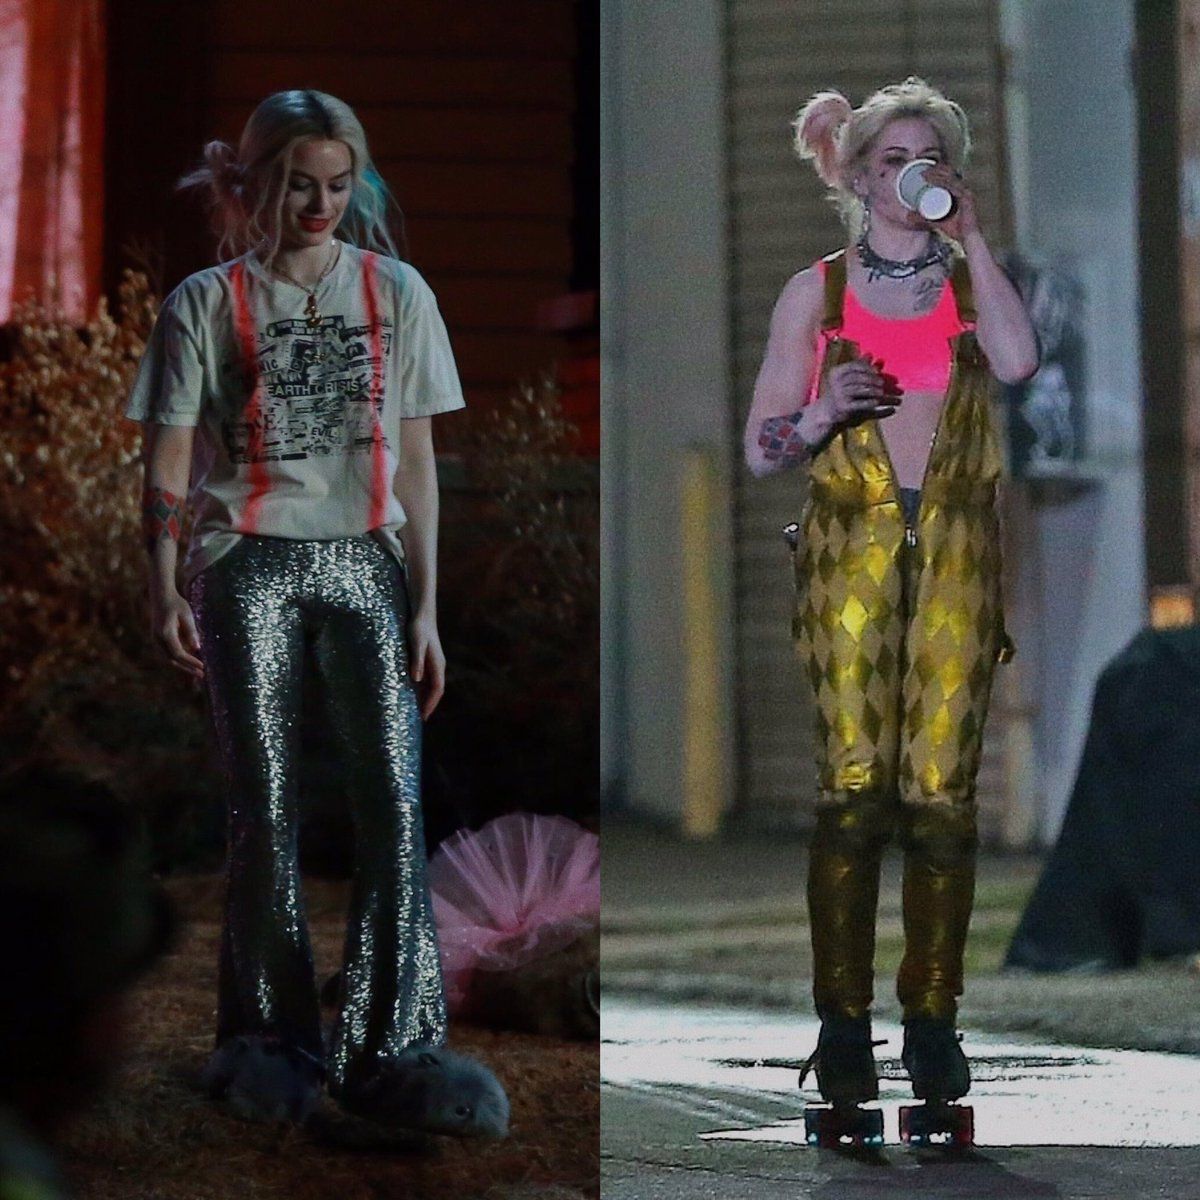 Best Of Margot On Twitter The Costumes Are Definitely Less Male Gaze Y That S What Happens When You Have A Female Producer Director And Writer Margot Robbie On Her New Harley Quinn